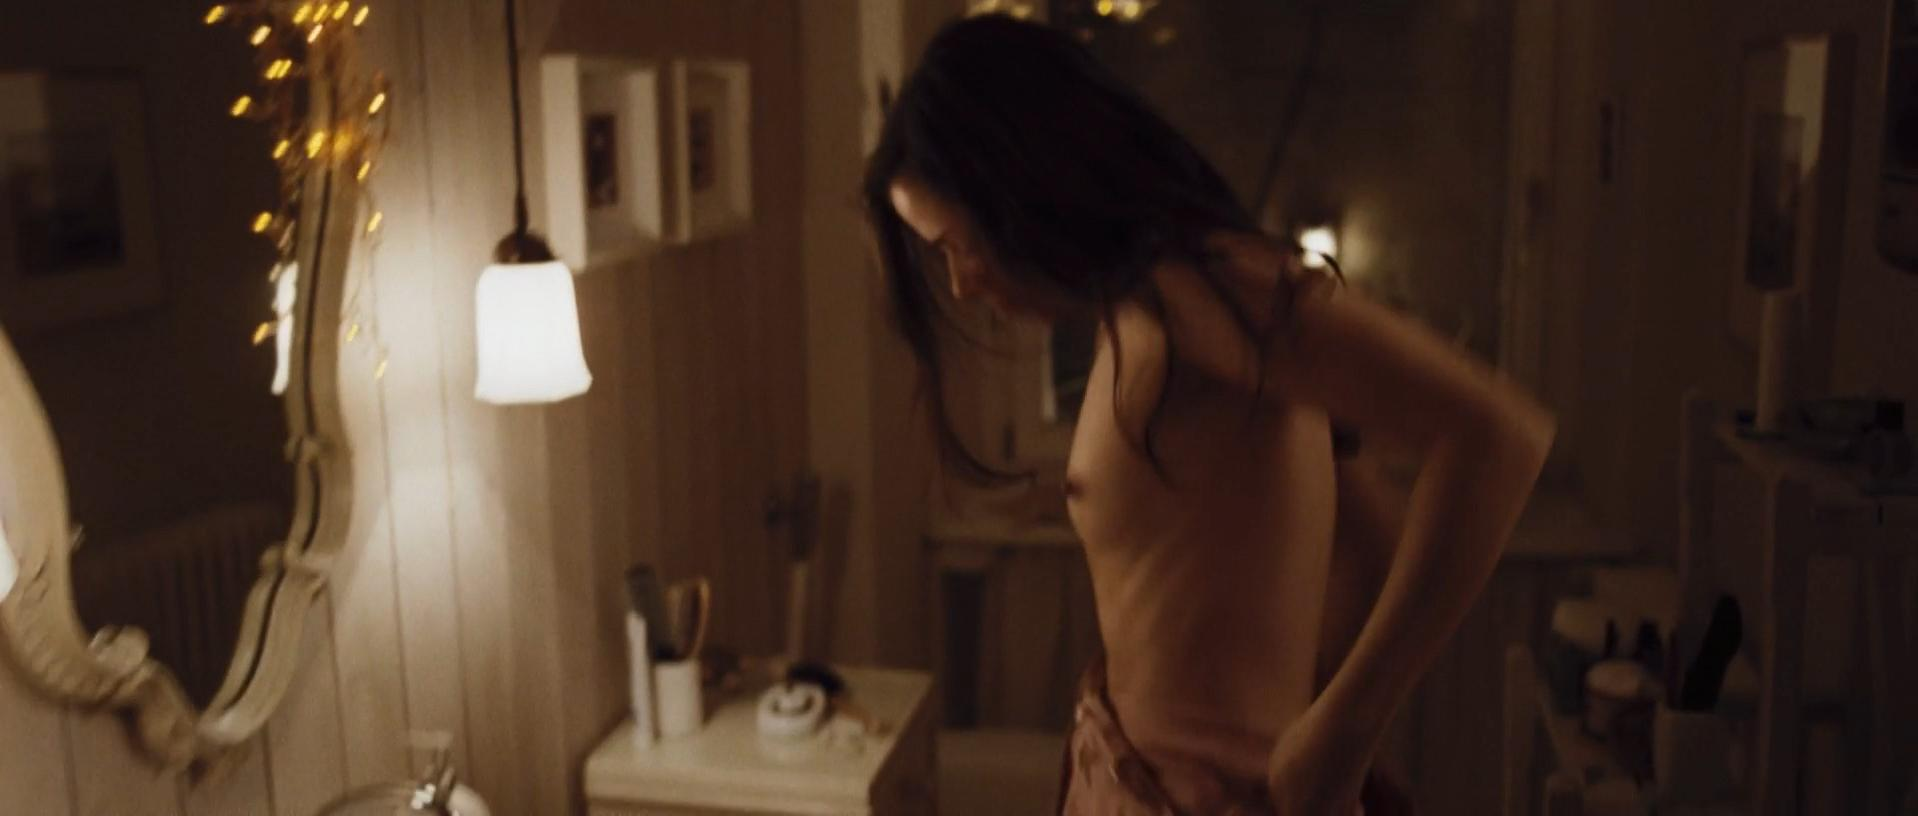 Movie actresses nude right! seems